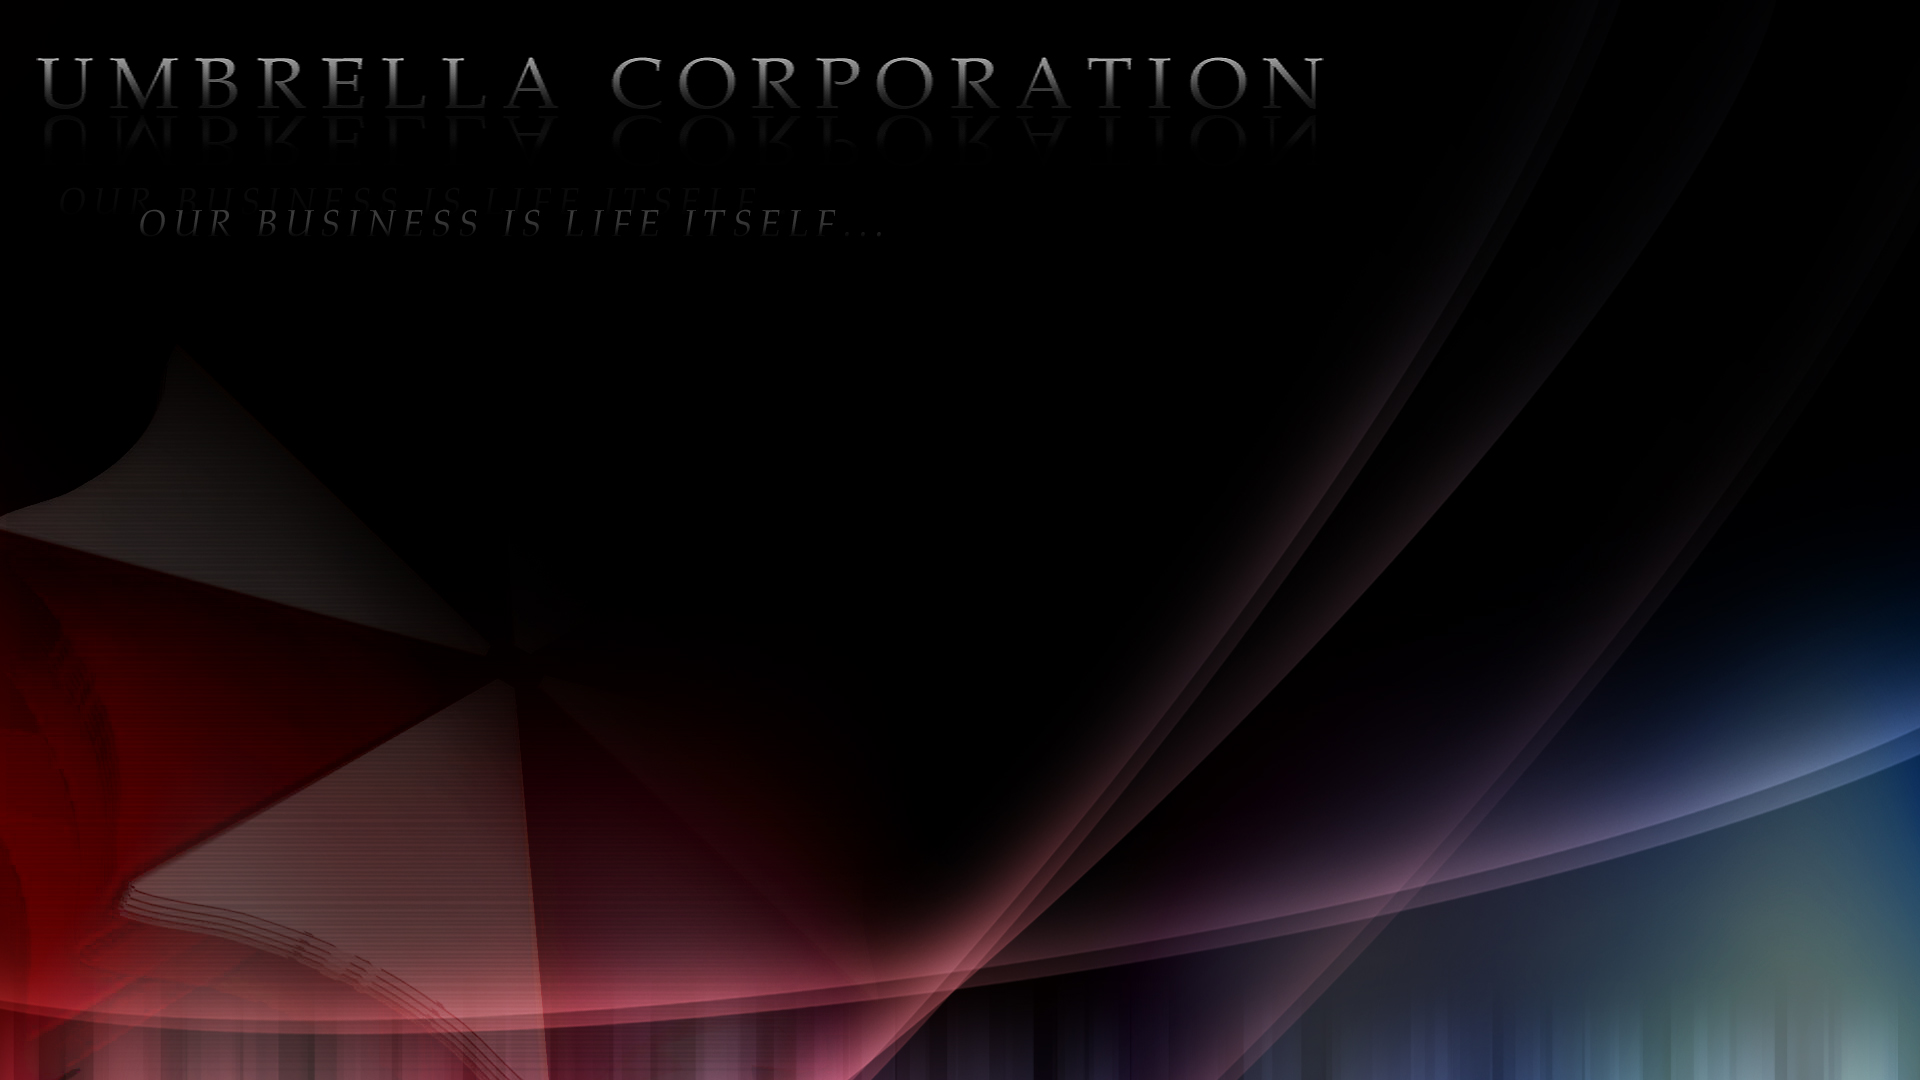 Umbrella corporation wallpaper image umbrellasecrets indie db report rss umbrella corporation wallpaper view original voltagebd Images